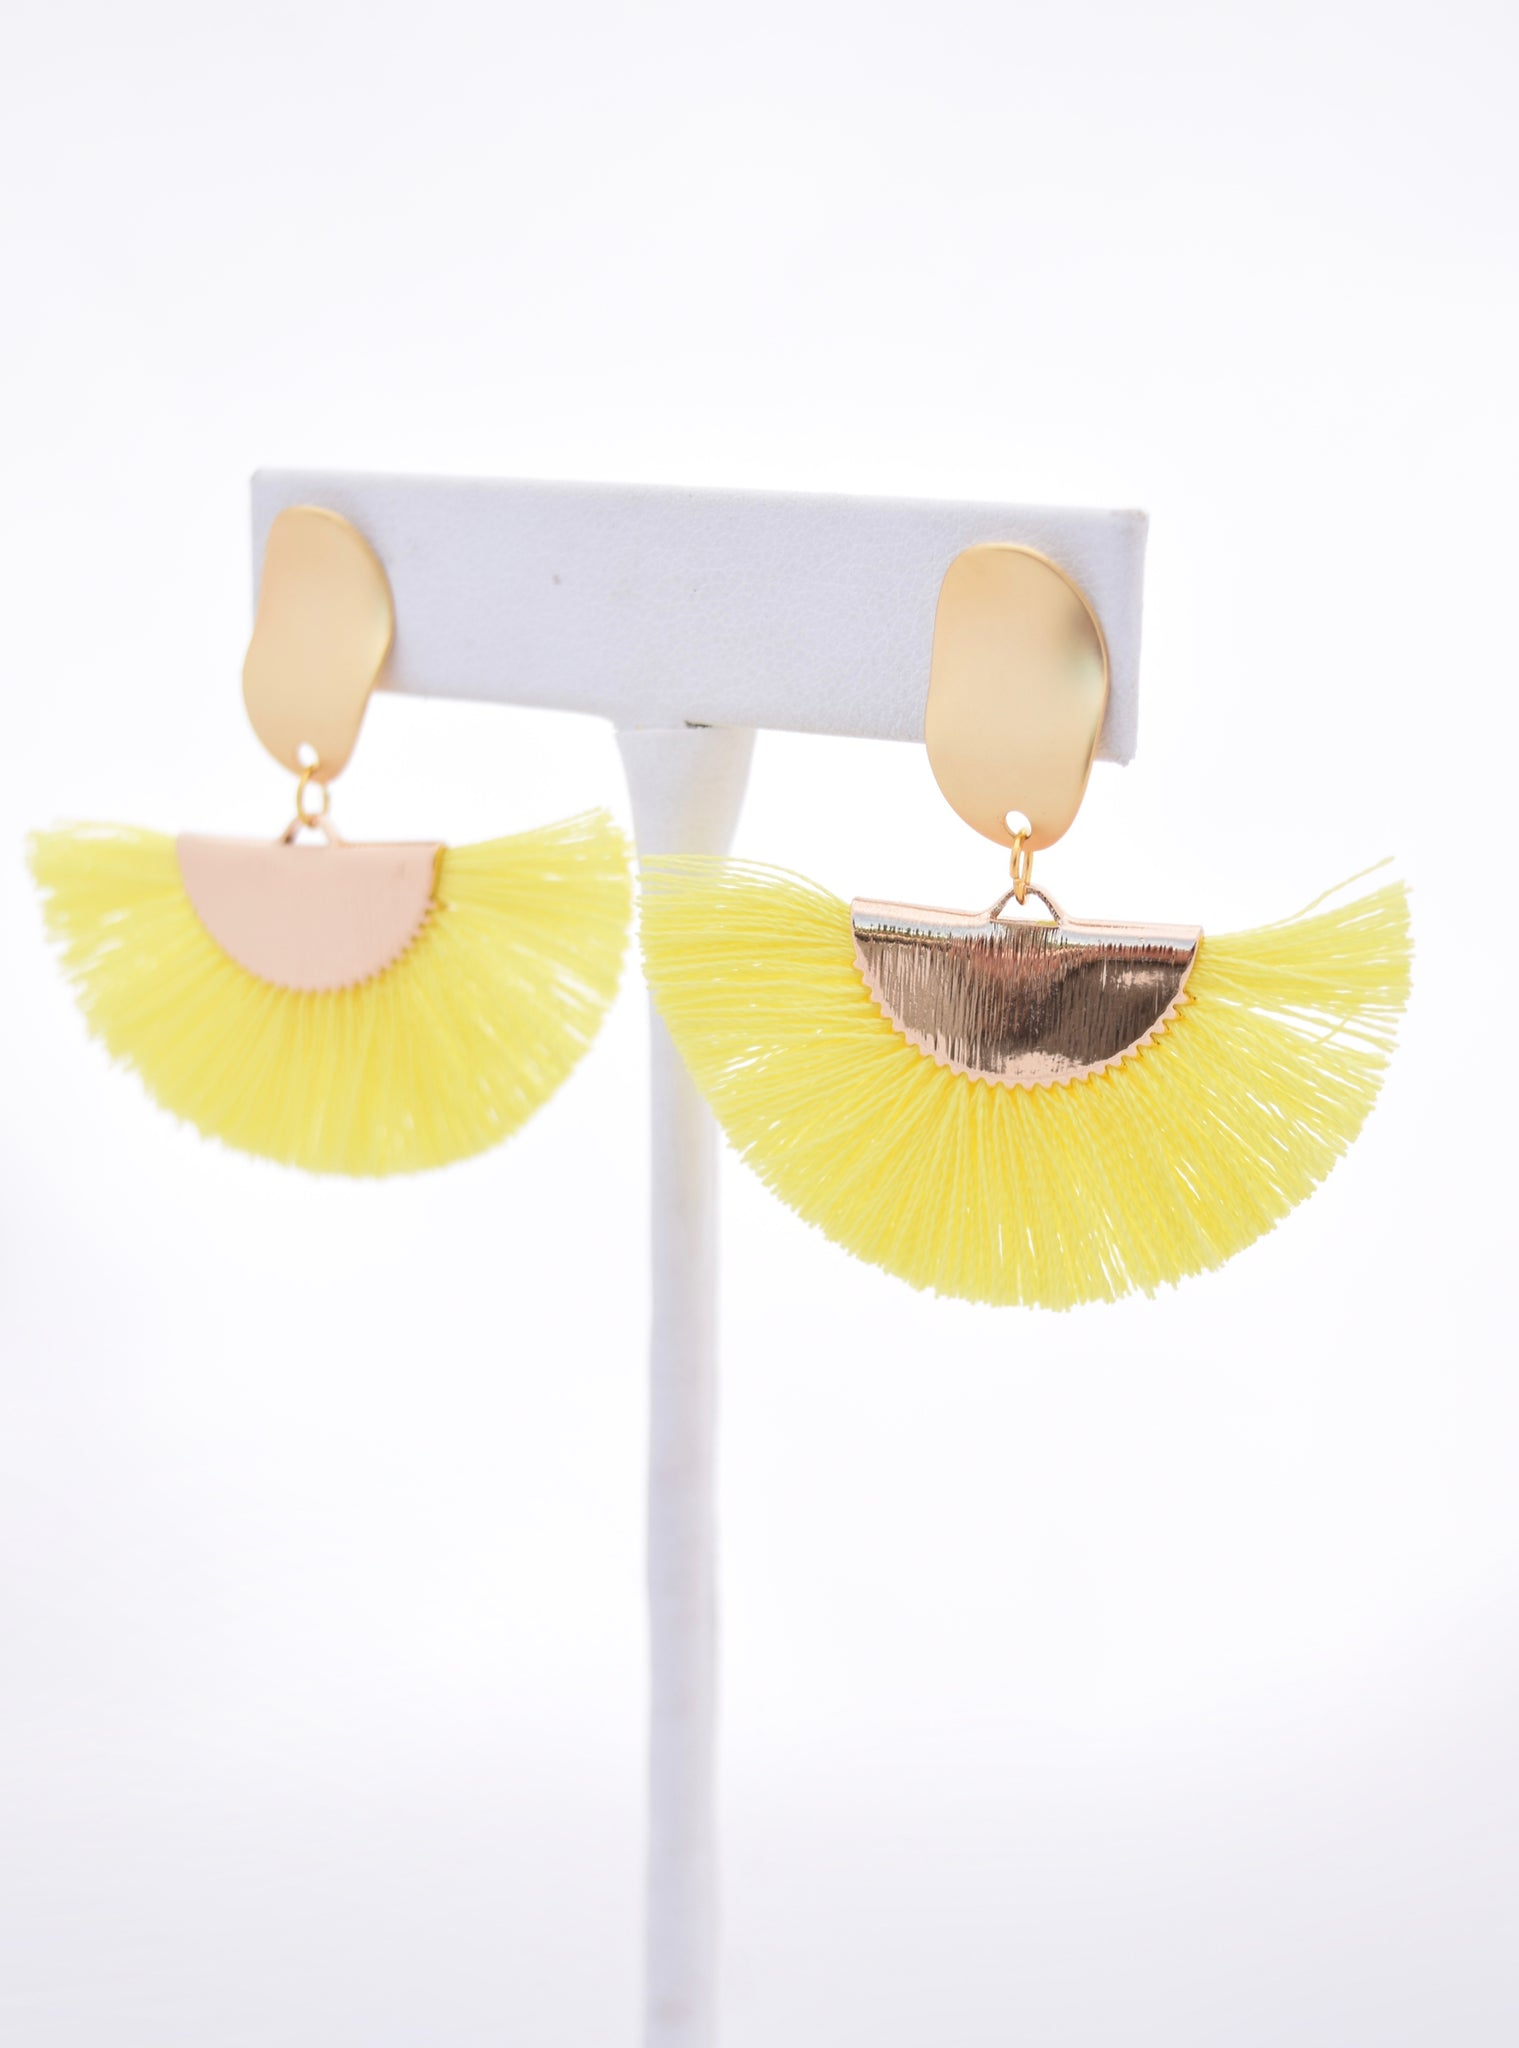 Nancy Neon Yellow Cotton Tassel/Fan Fringe Earring, STP